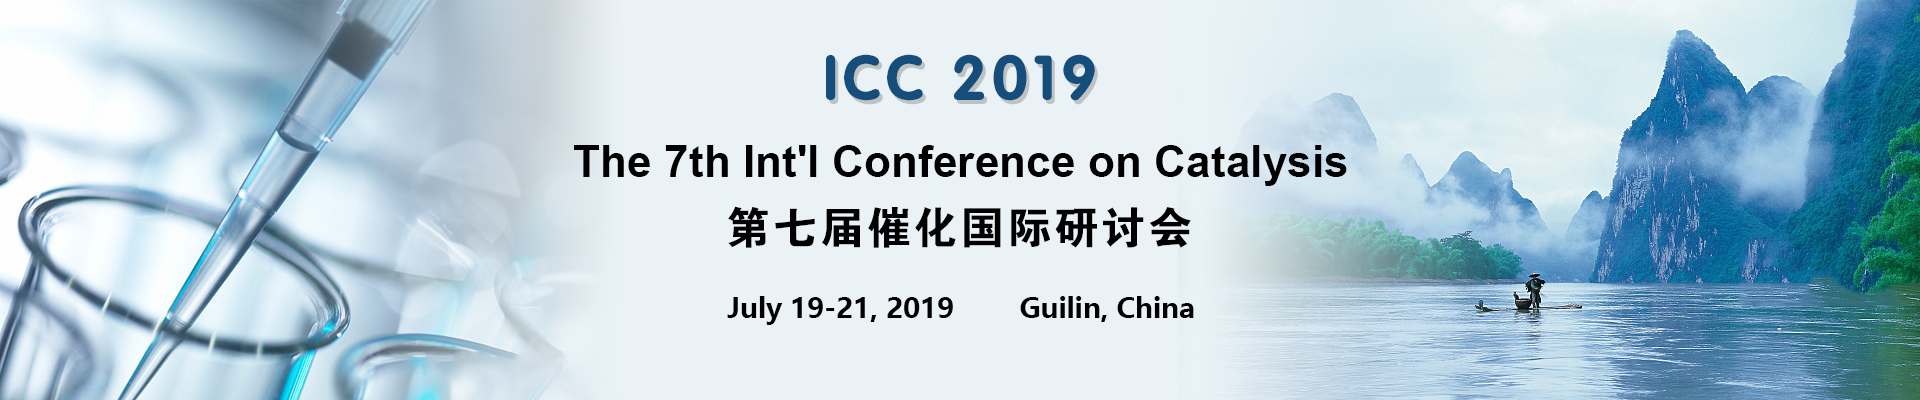 The 7th Int'l Conference on Catalysis,第七届催化国际研讨会